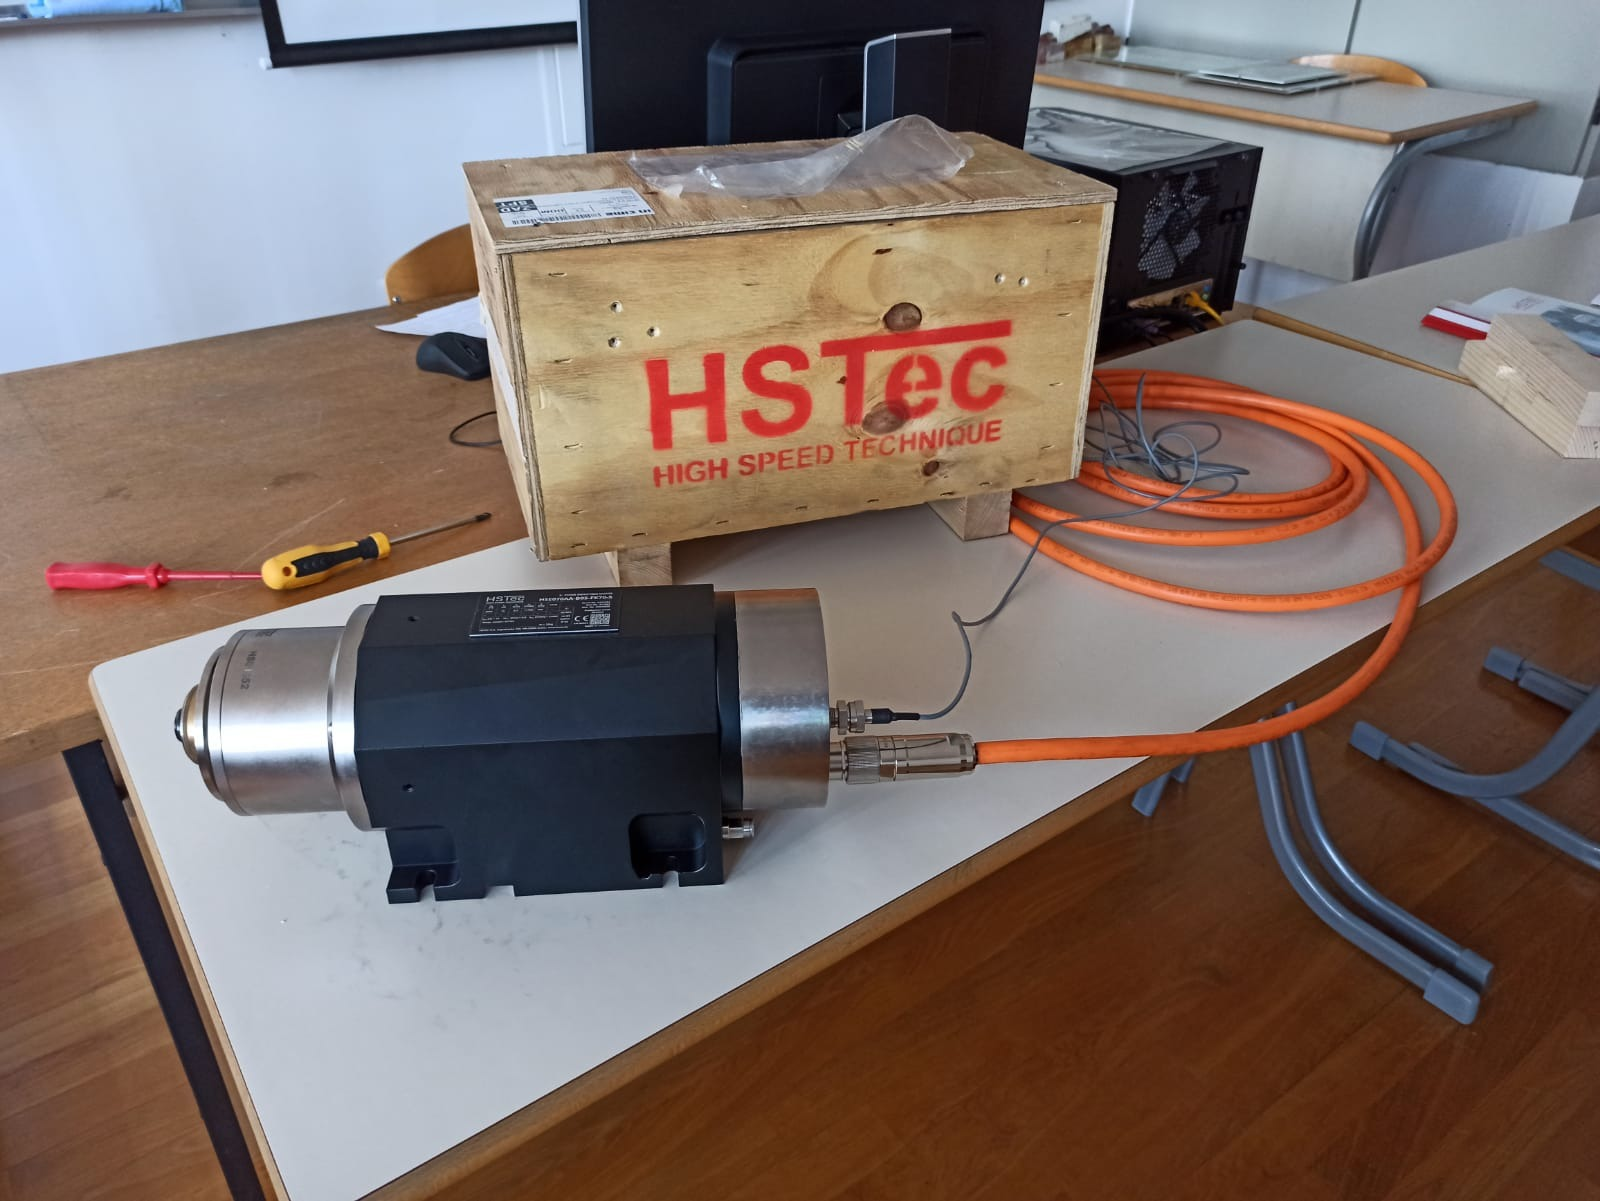 A very valuable donation from the company HSTec